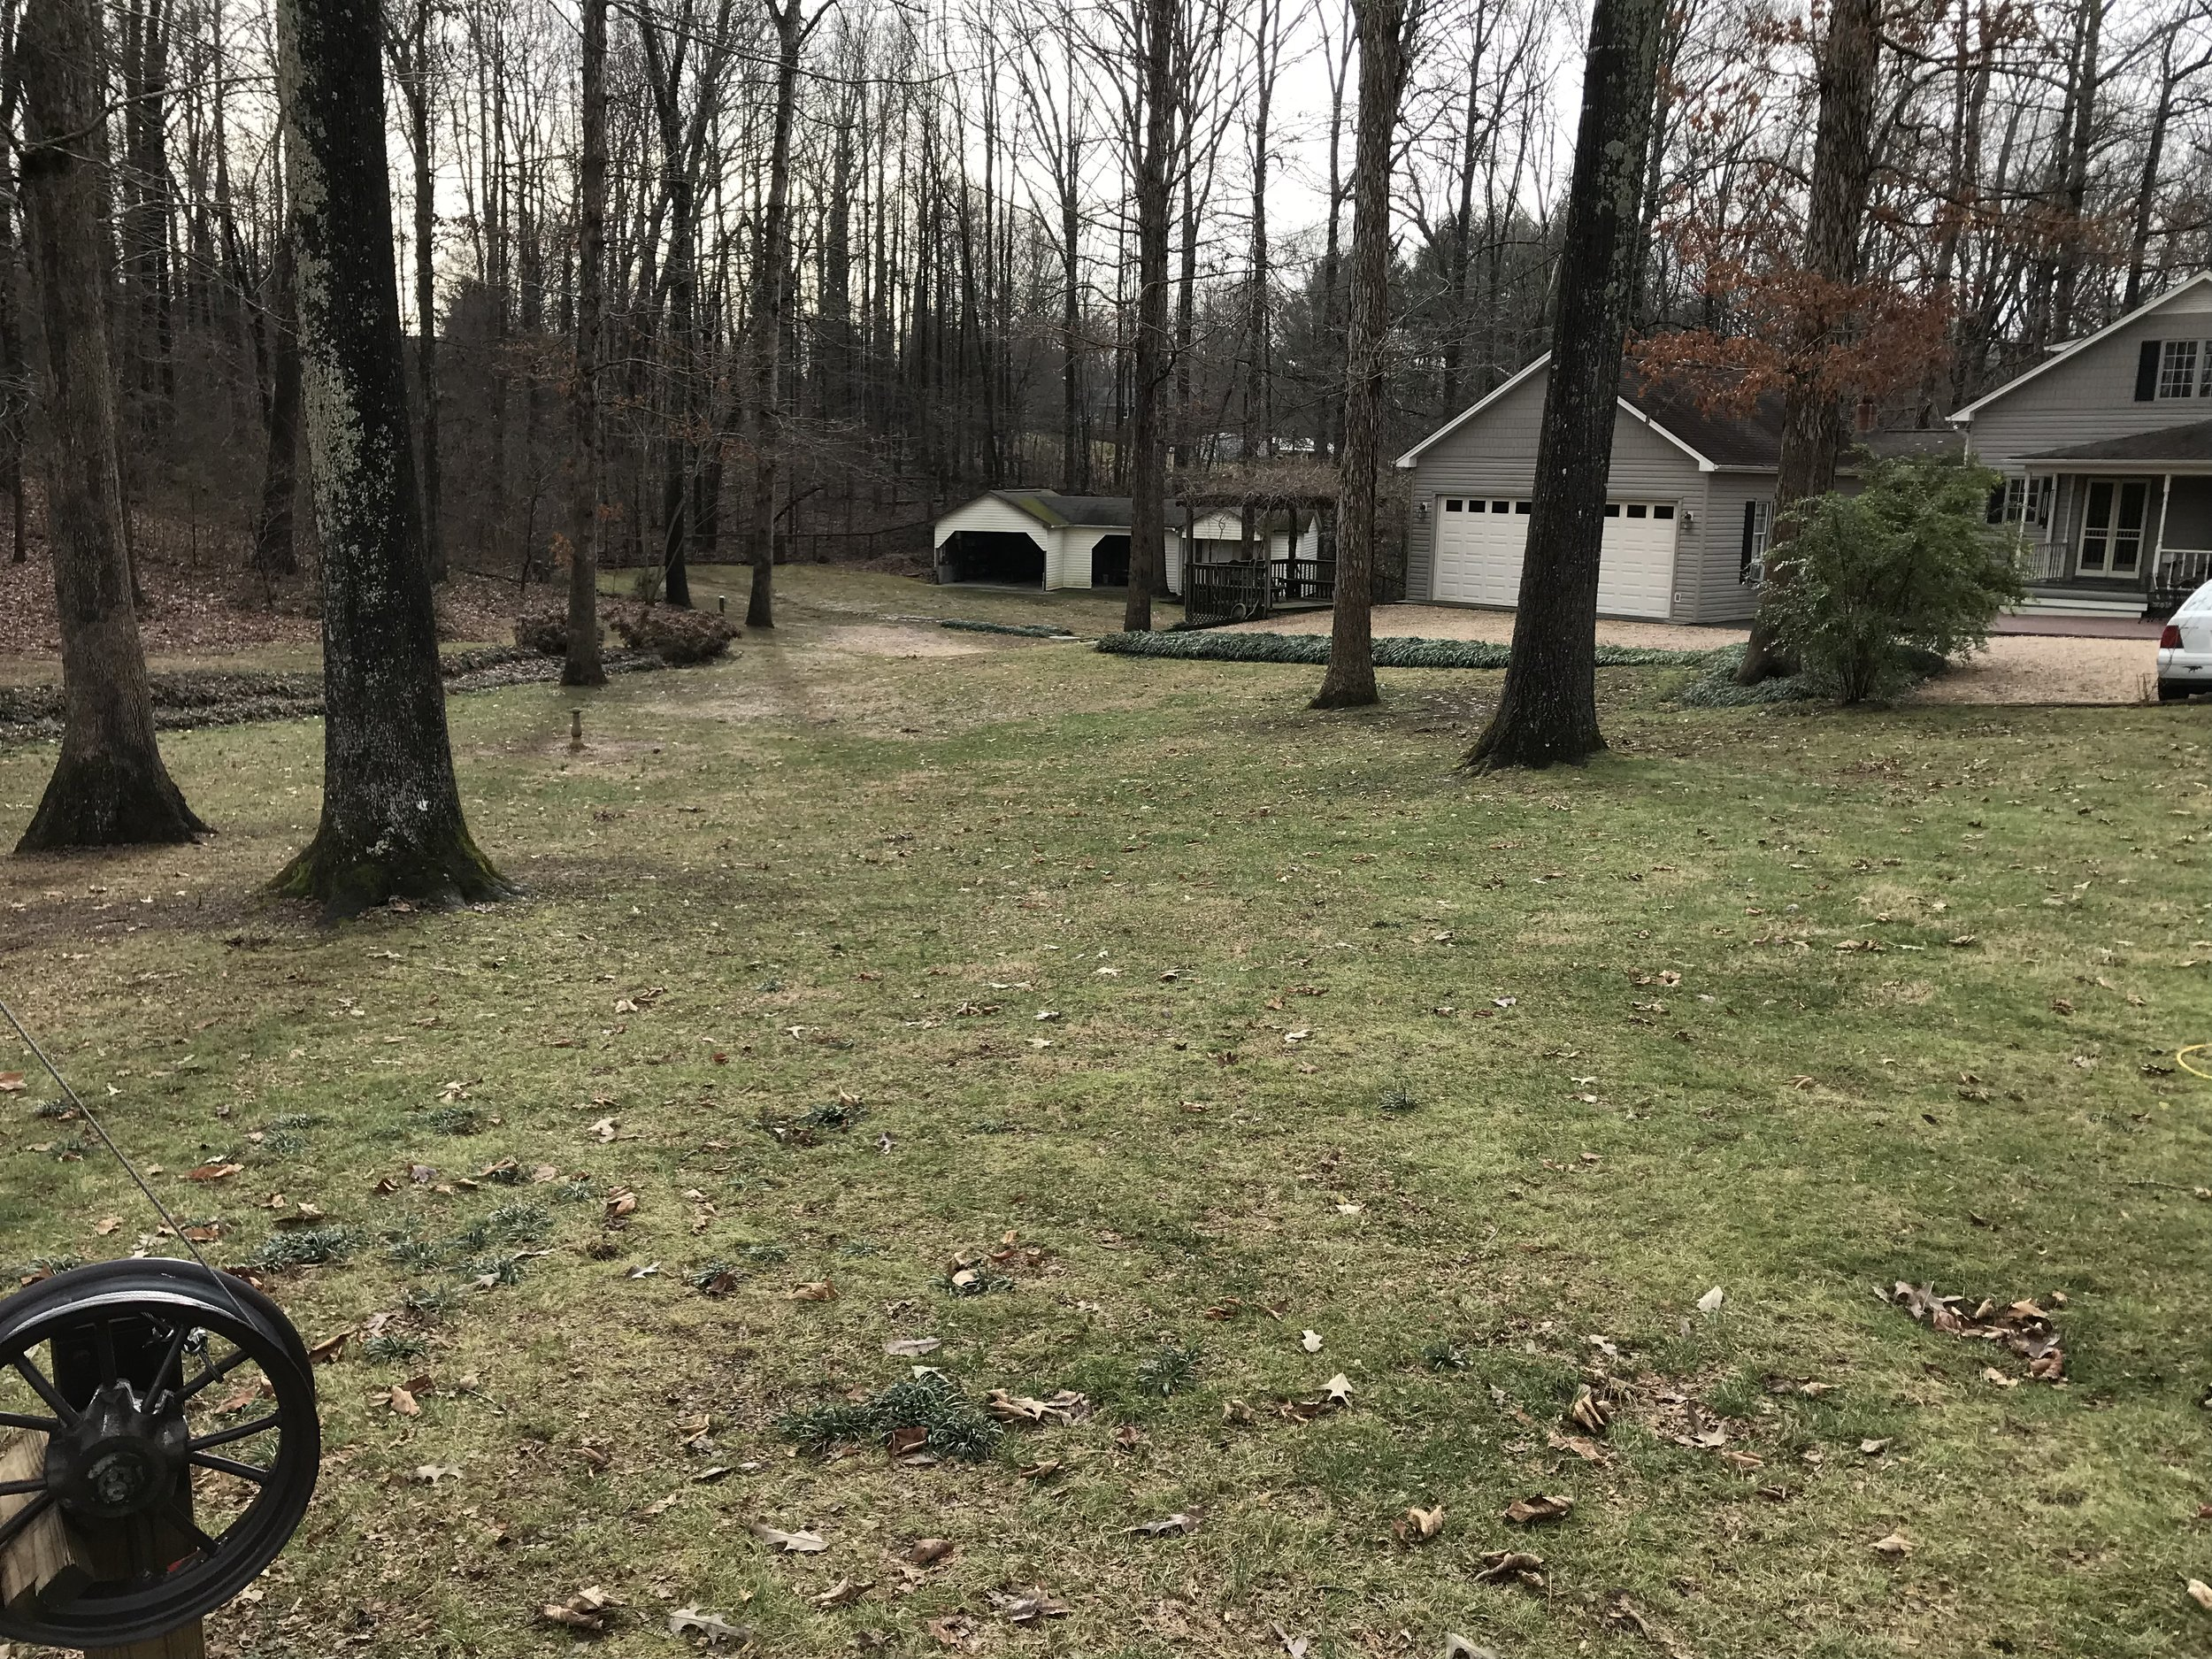 This is photo 10. Looking back down the side yard towards Lot 47 and the back yard.